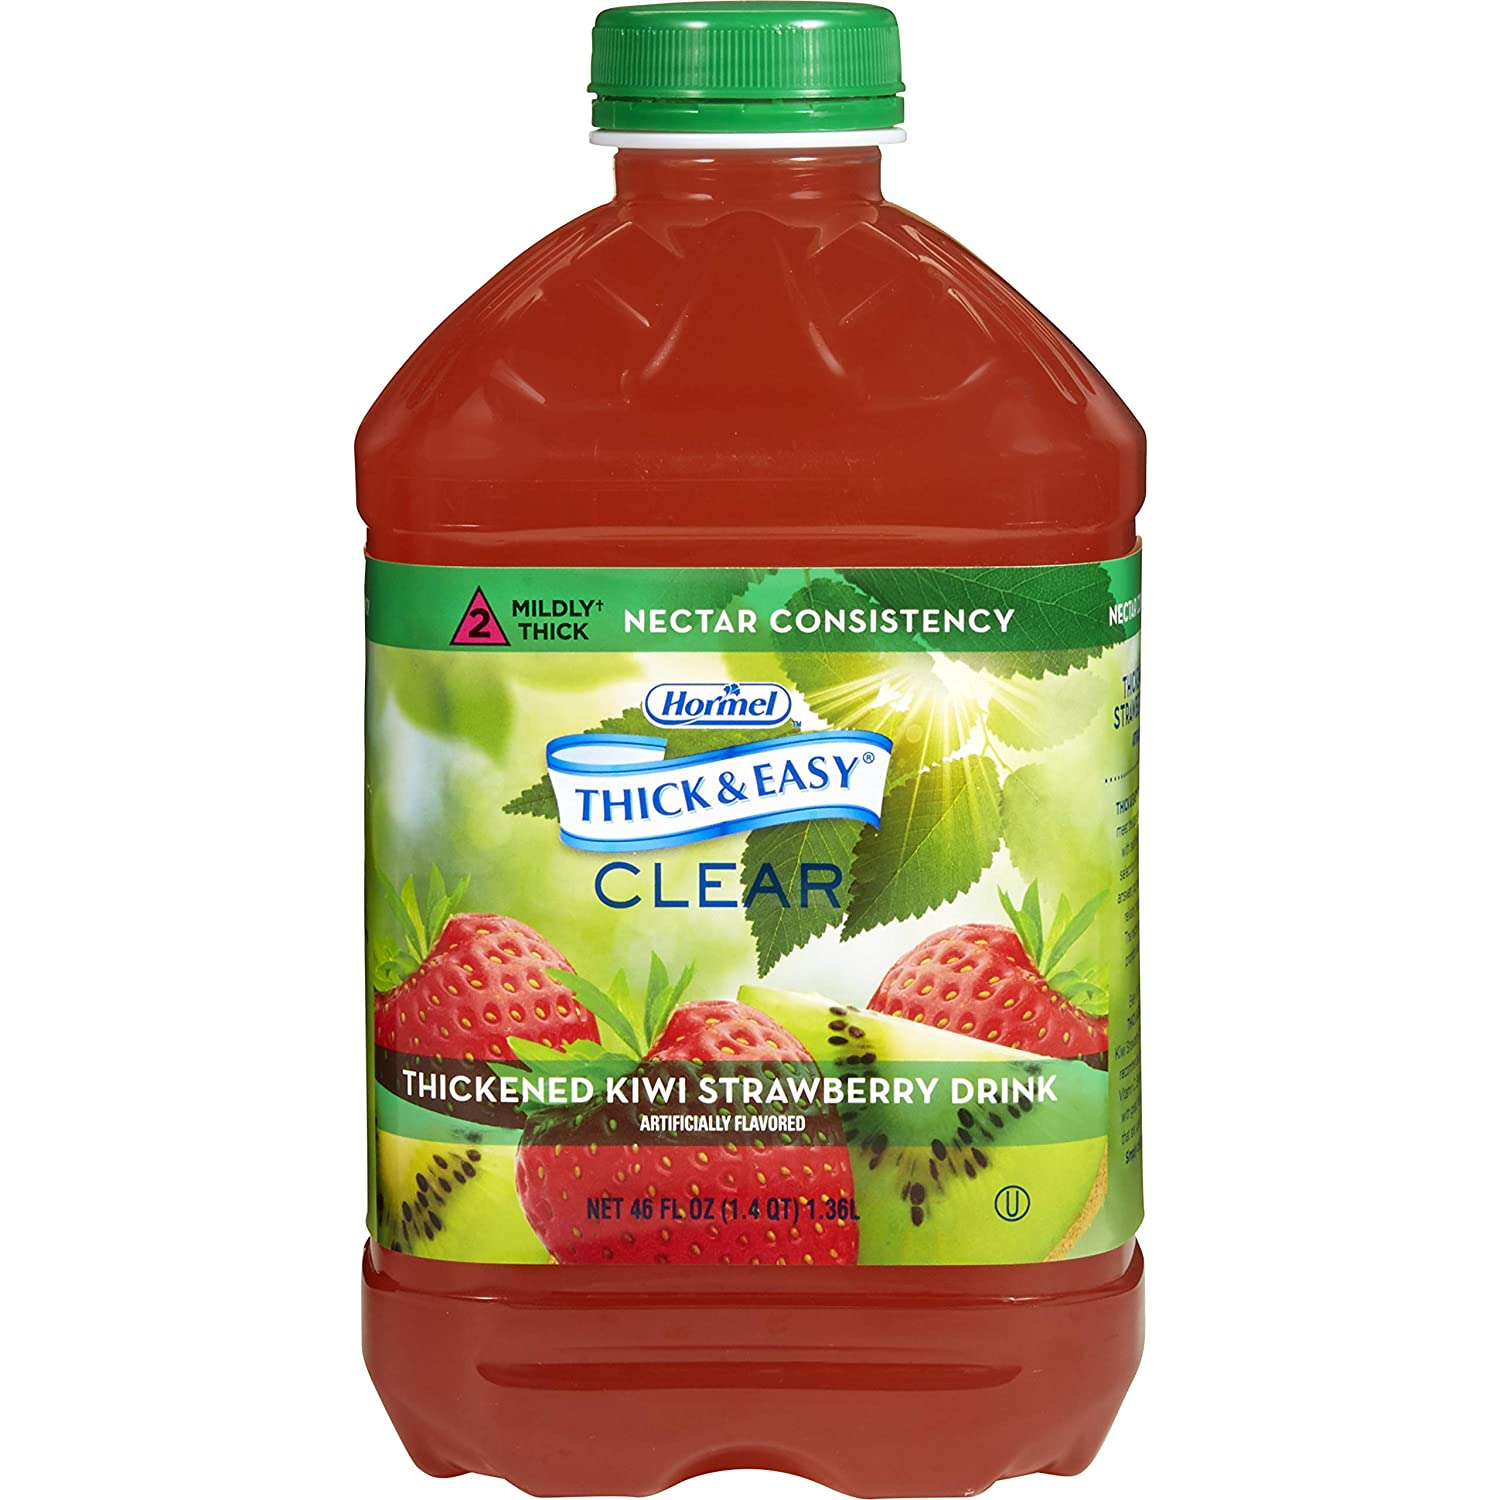 Thick & Easy Thickened Beverage 46 oz. Bottle Kiwi Strawberry Flavor Ready to Use Nectar Consistency, 27930 - Case of 6